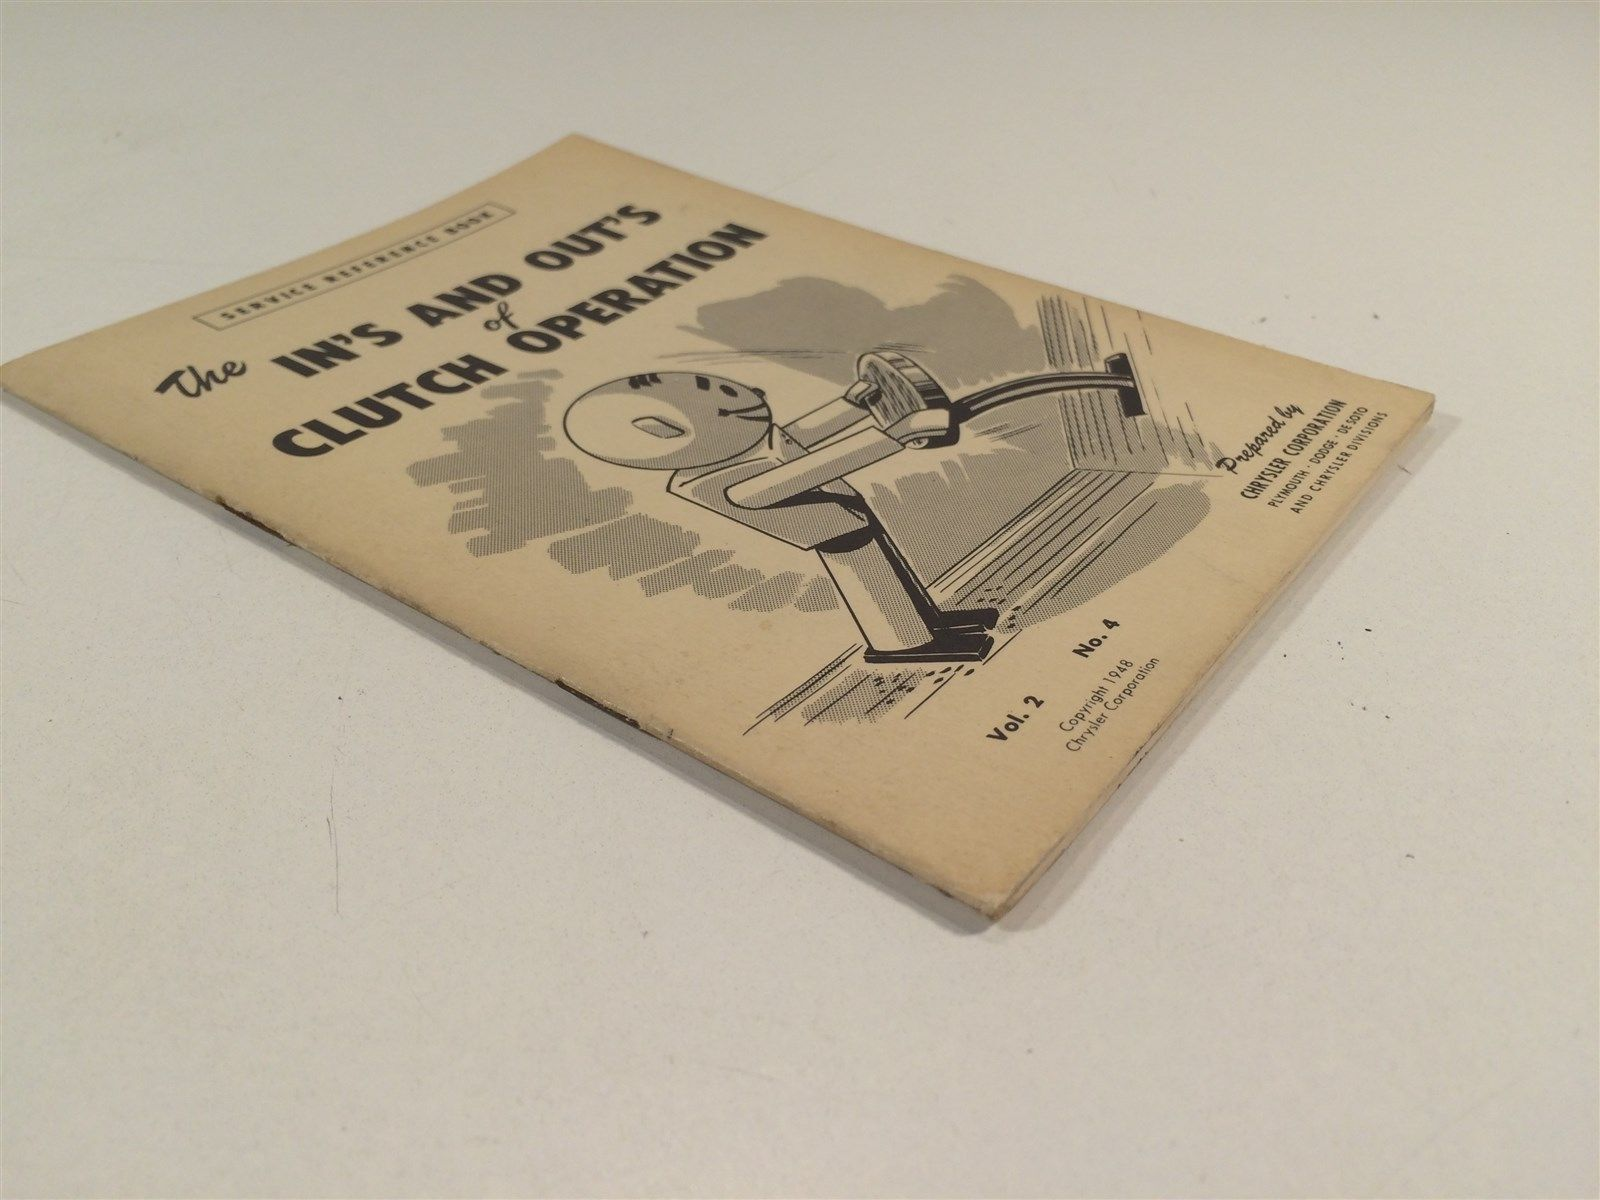 1948 Chrysler Corp Service Ref Book V2 No 4 In's and Out's of Clutch Operation